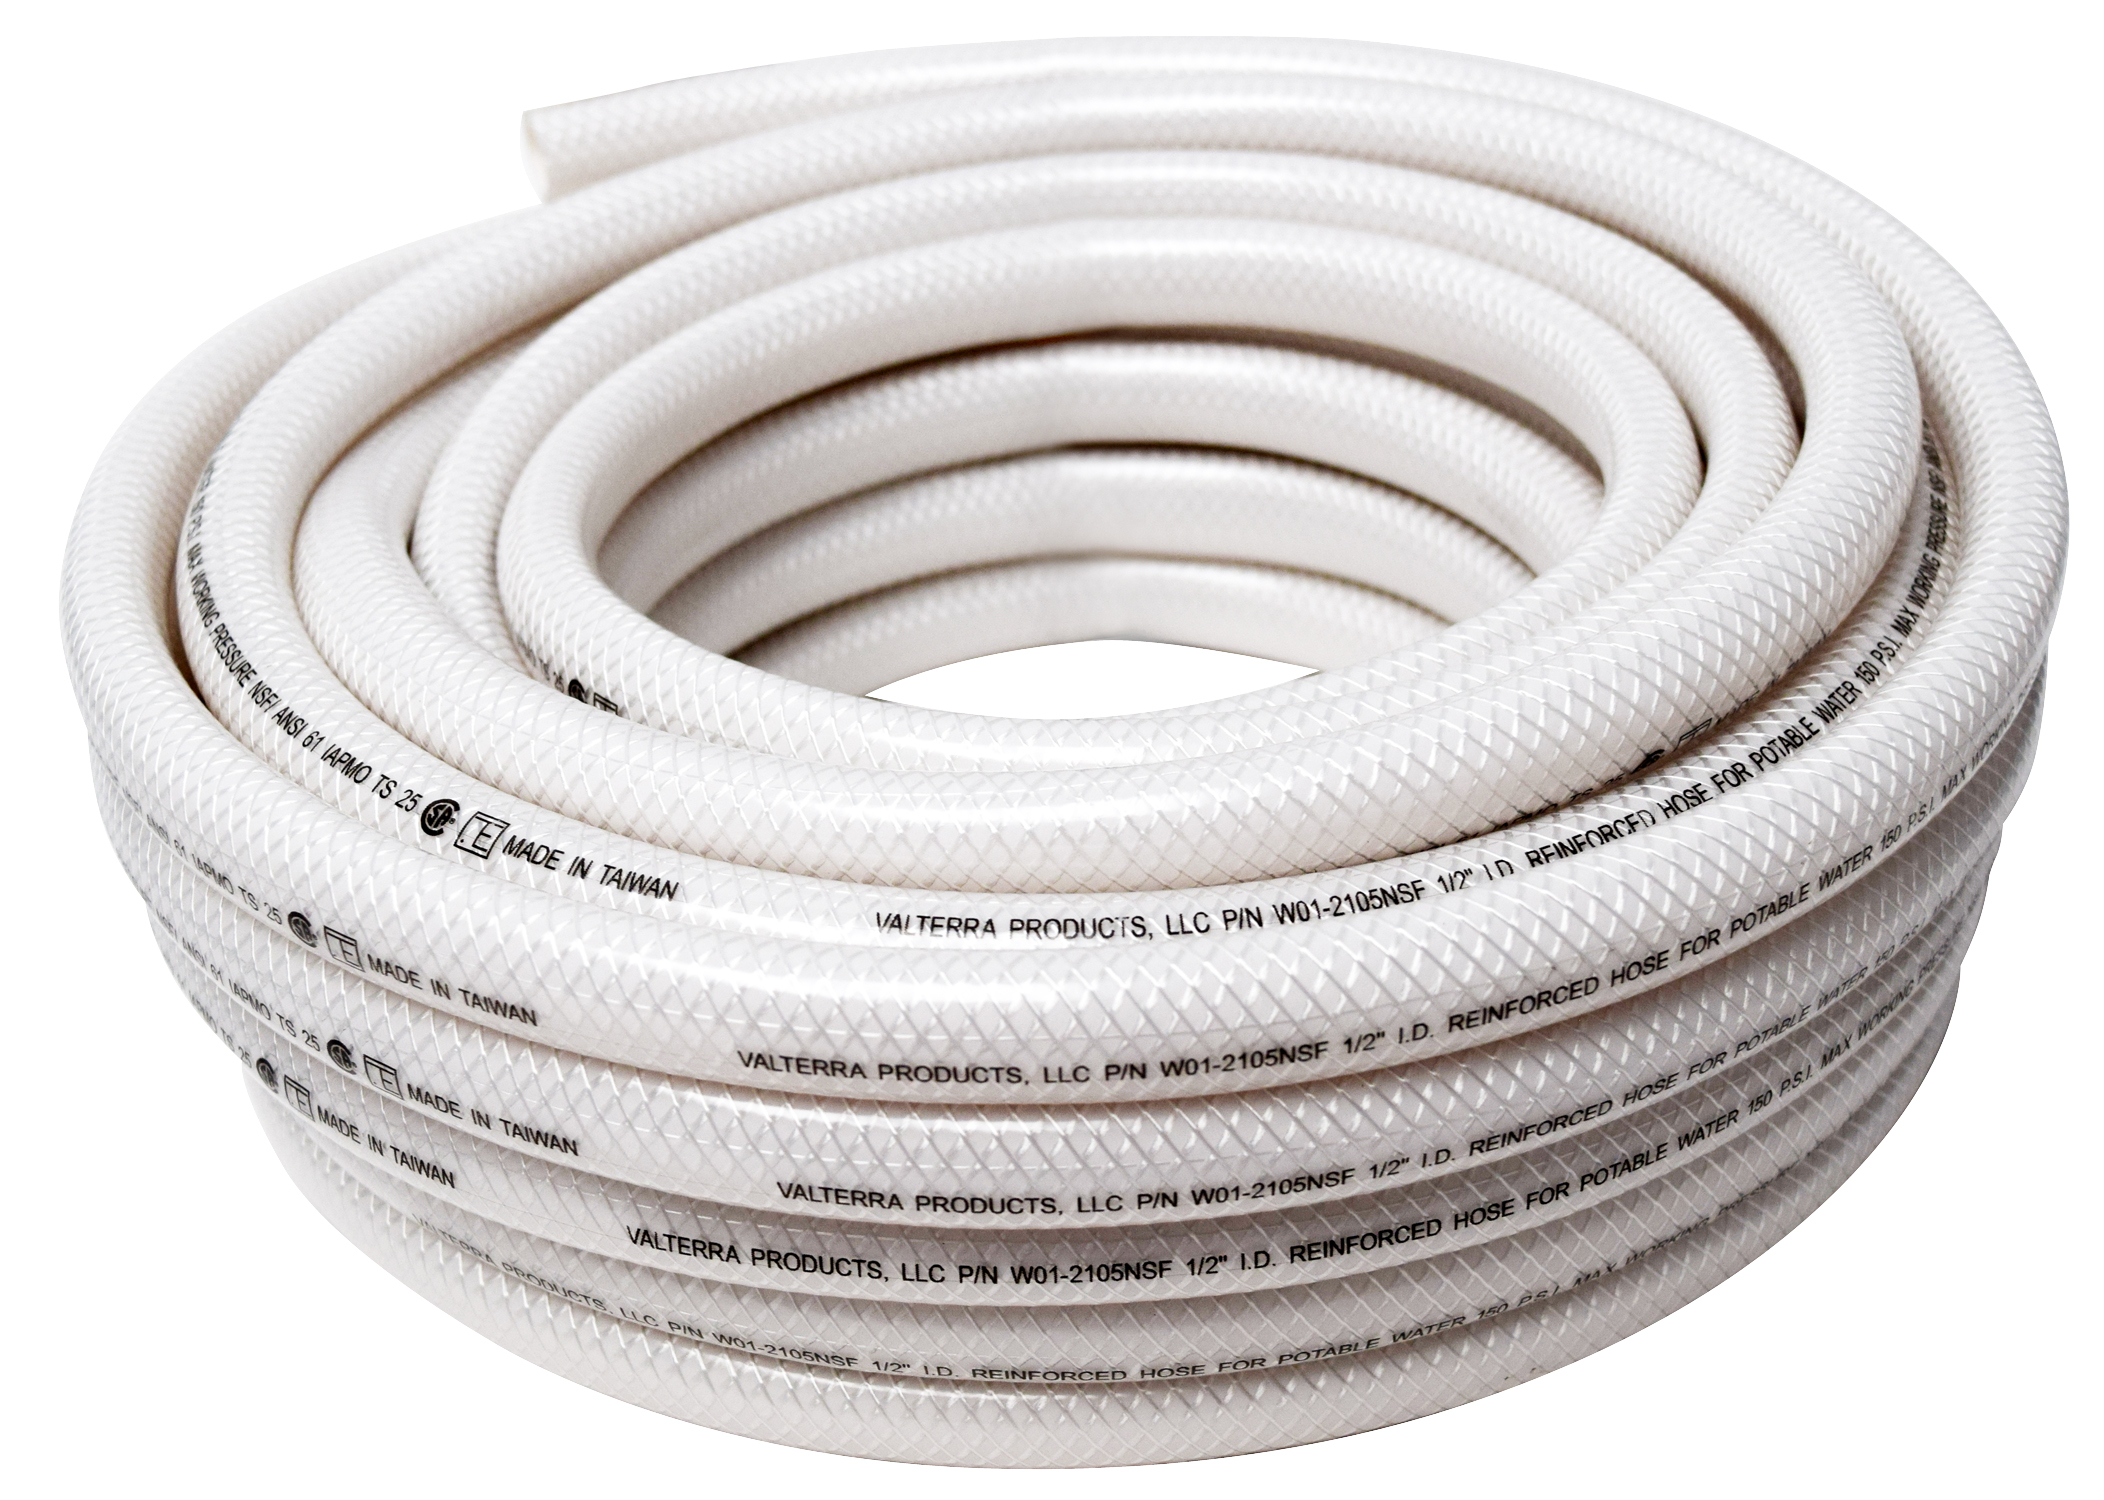 W01-1800 Valterra Tubing Use For RV Fresh Water System